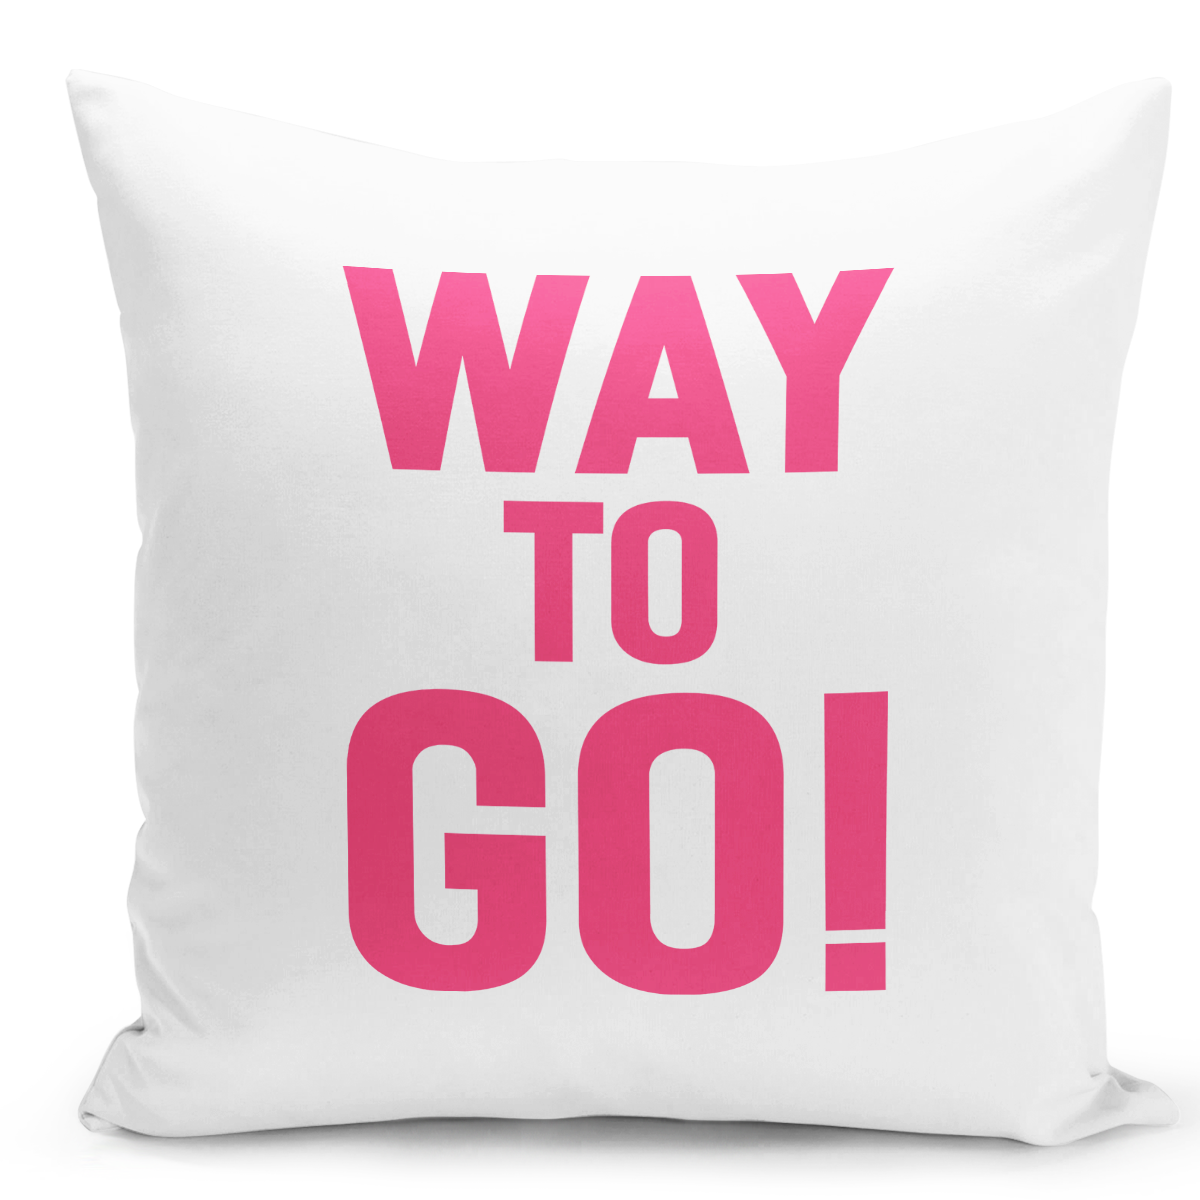 16x16-inch-Throw-Pillow-for-Home-Decor-with-Stuffing-Way-To-Go-Pink-Girly-Pillow-